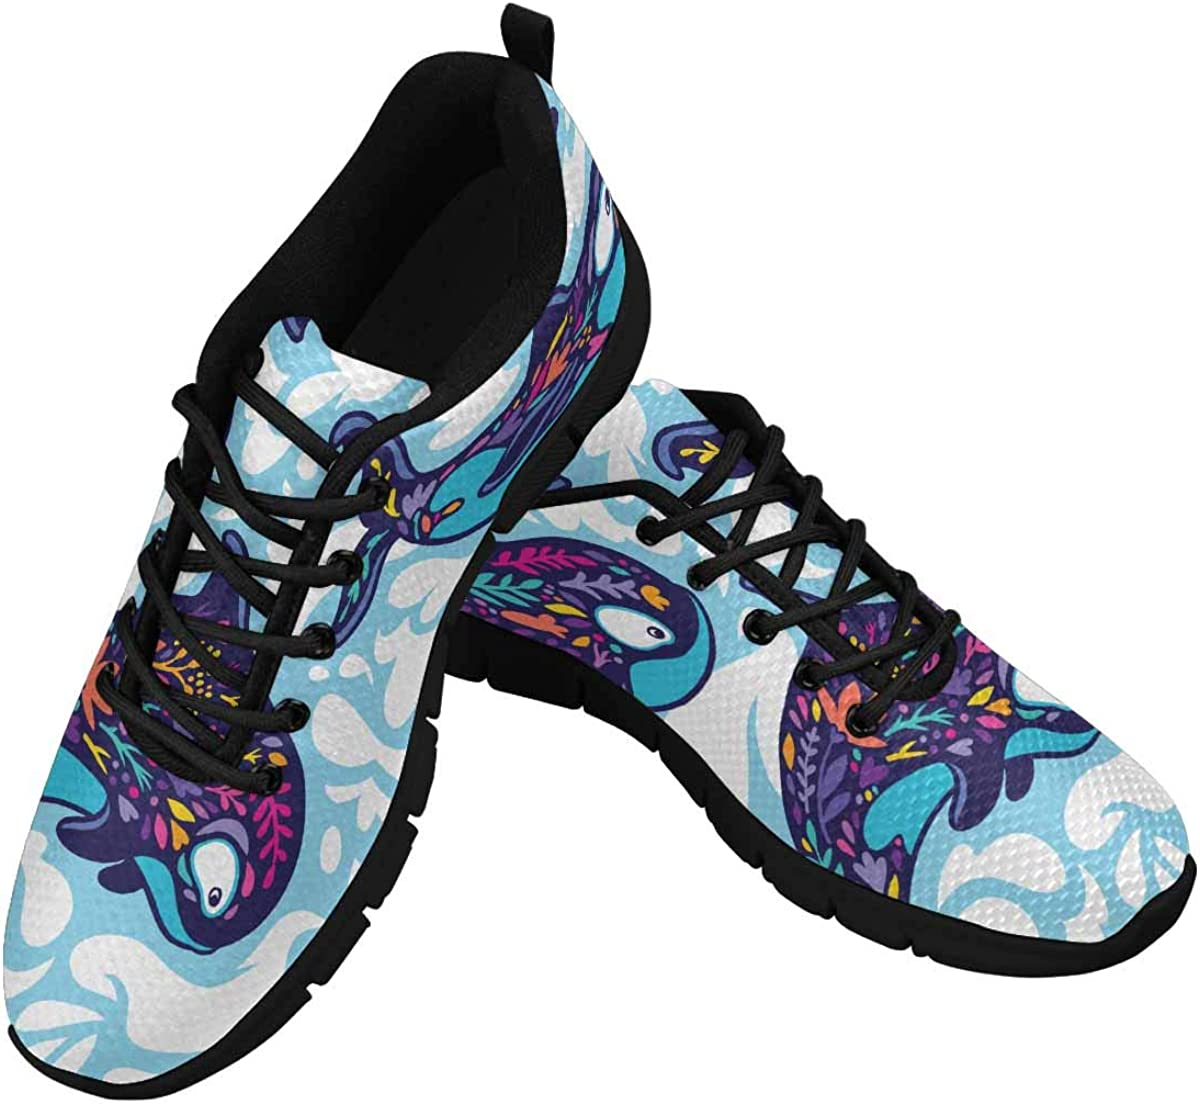 INTERESTPRINT Marine Pattern with Floral Orca Whales Women's Athletic Mesh Breathable Casual Sneakers